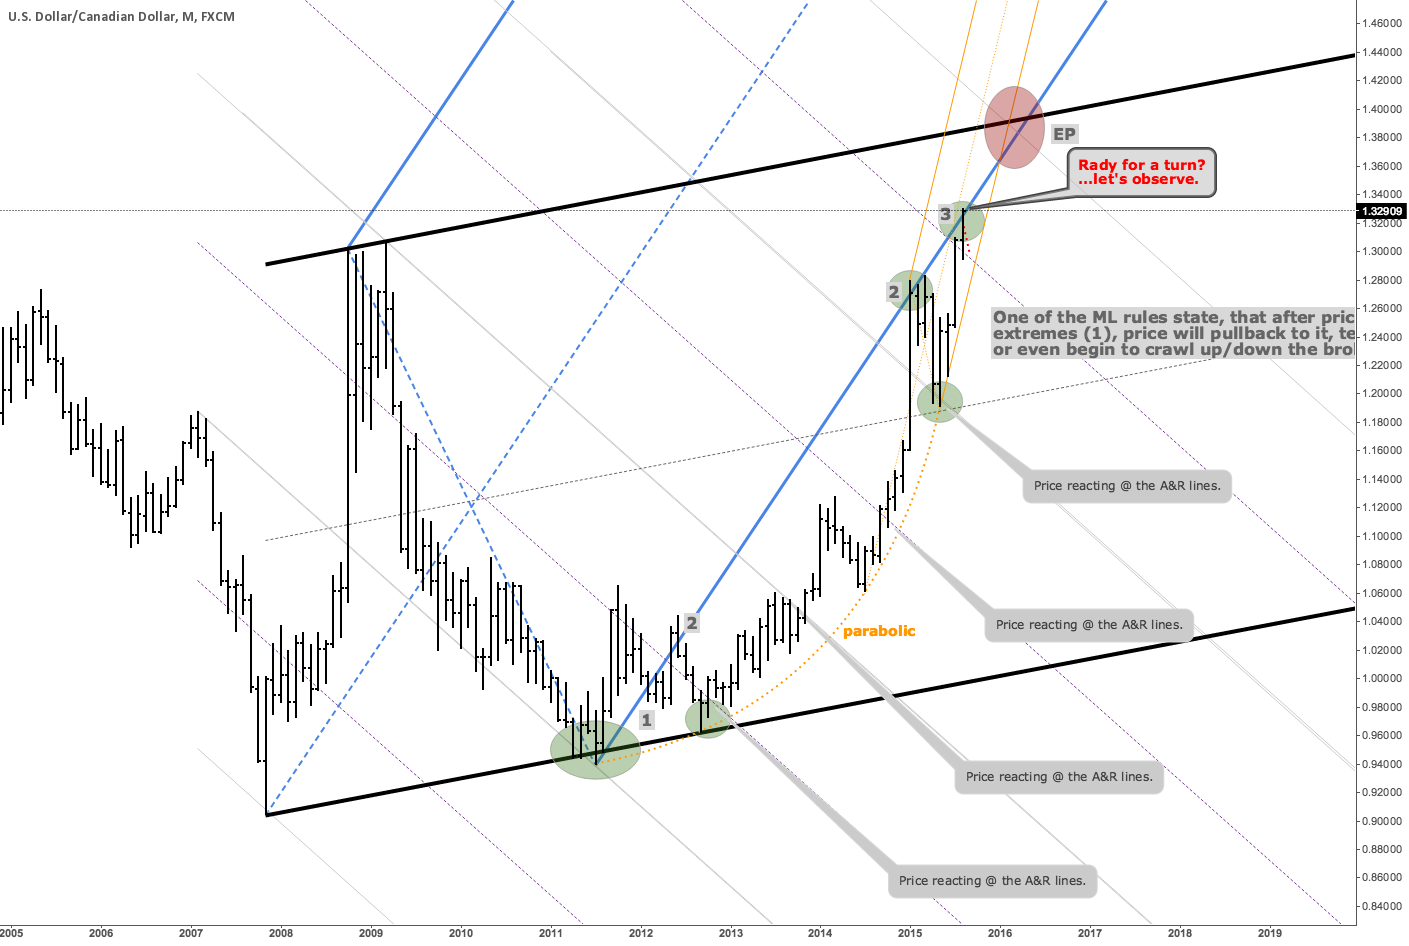 USDCAD at a monthly potential turning point.